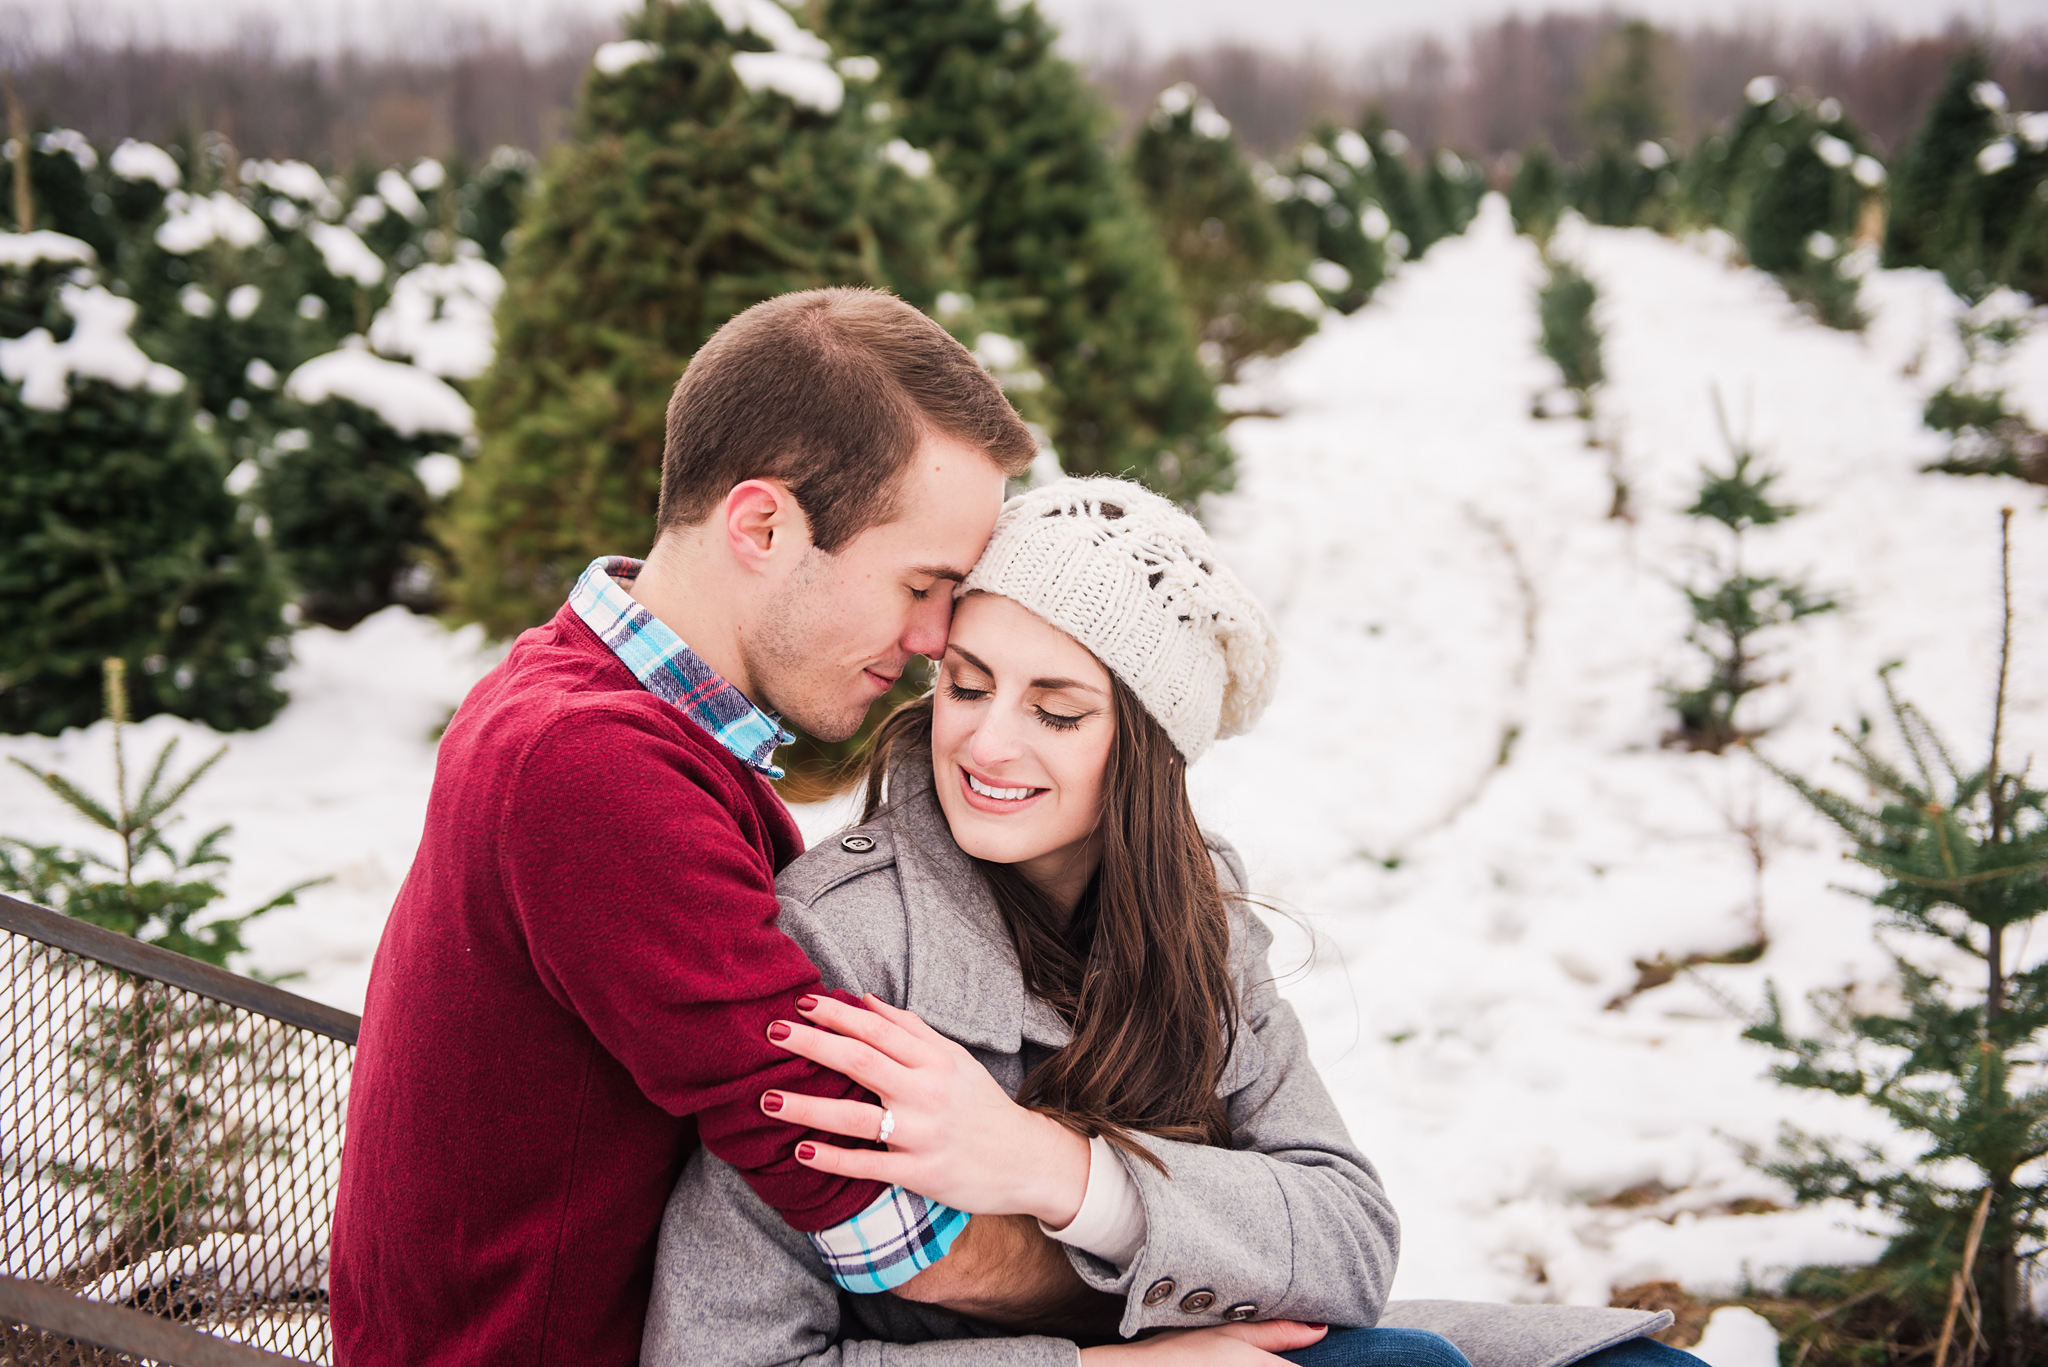 Woody_Acres_Rochester_Engagement_Session_JILL_STUDIO_Rochester_NY_Photographer_154322.jpg